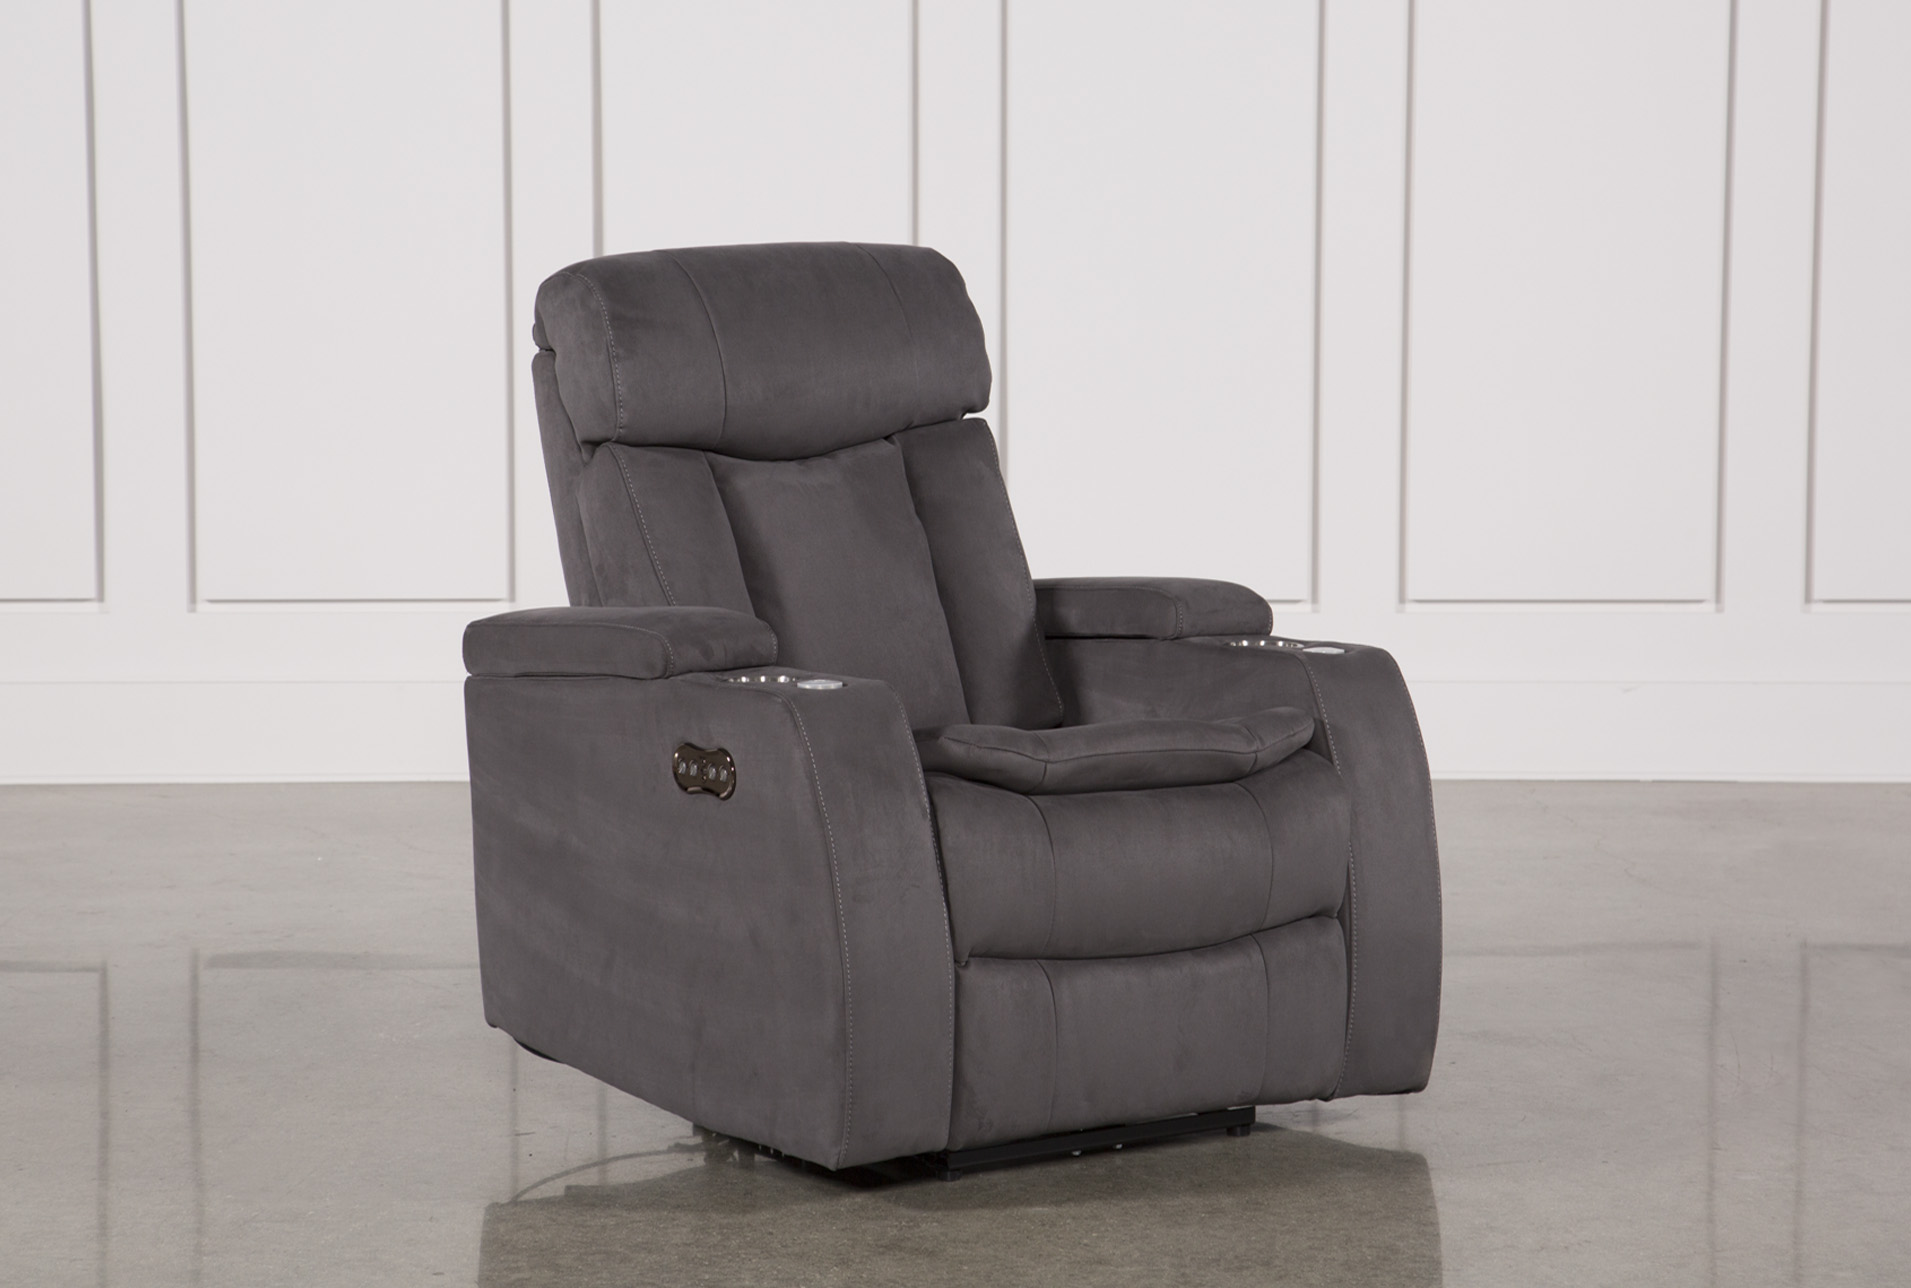 Exceptionnel Celebrity Steel Home Theater Recliner W/Power Headrest   360